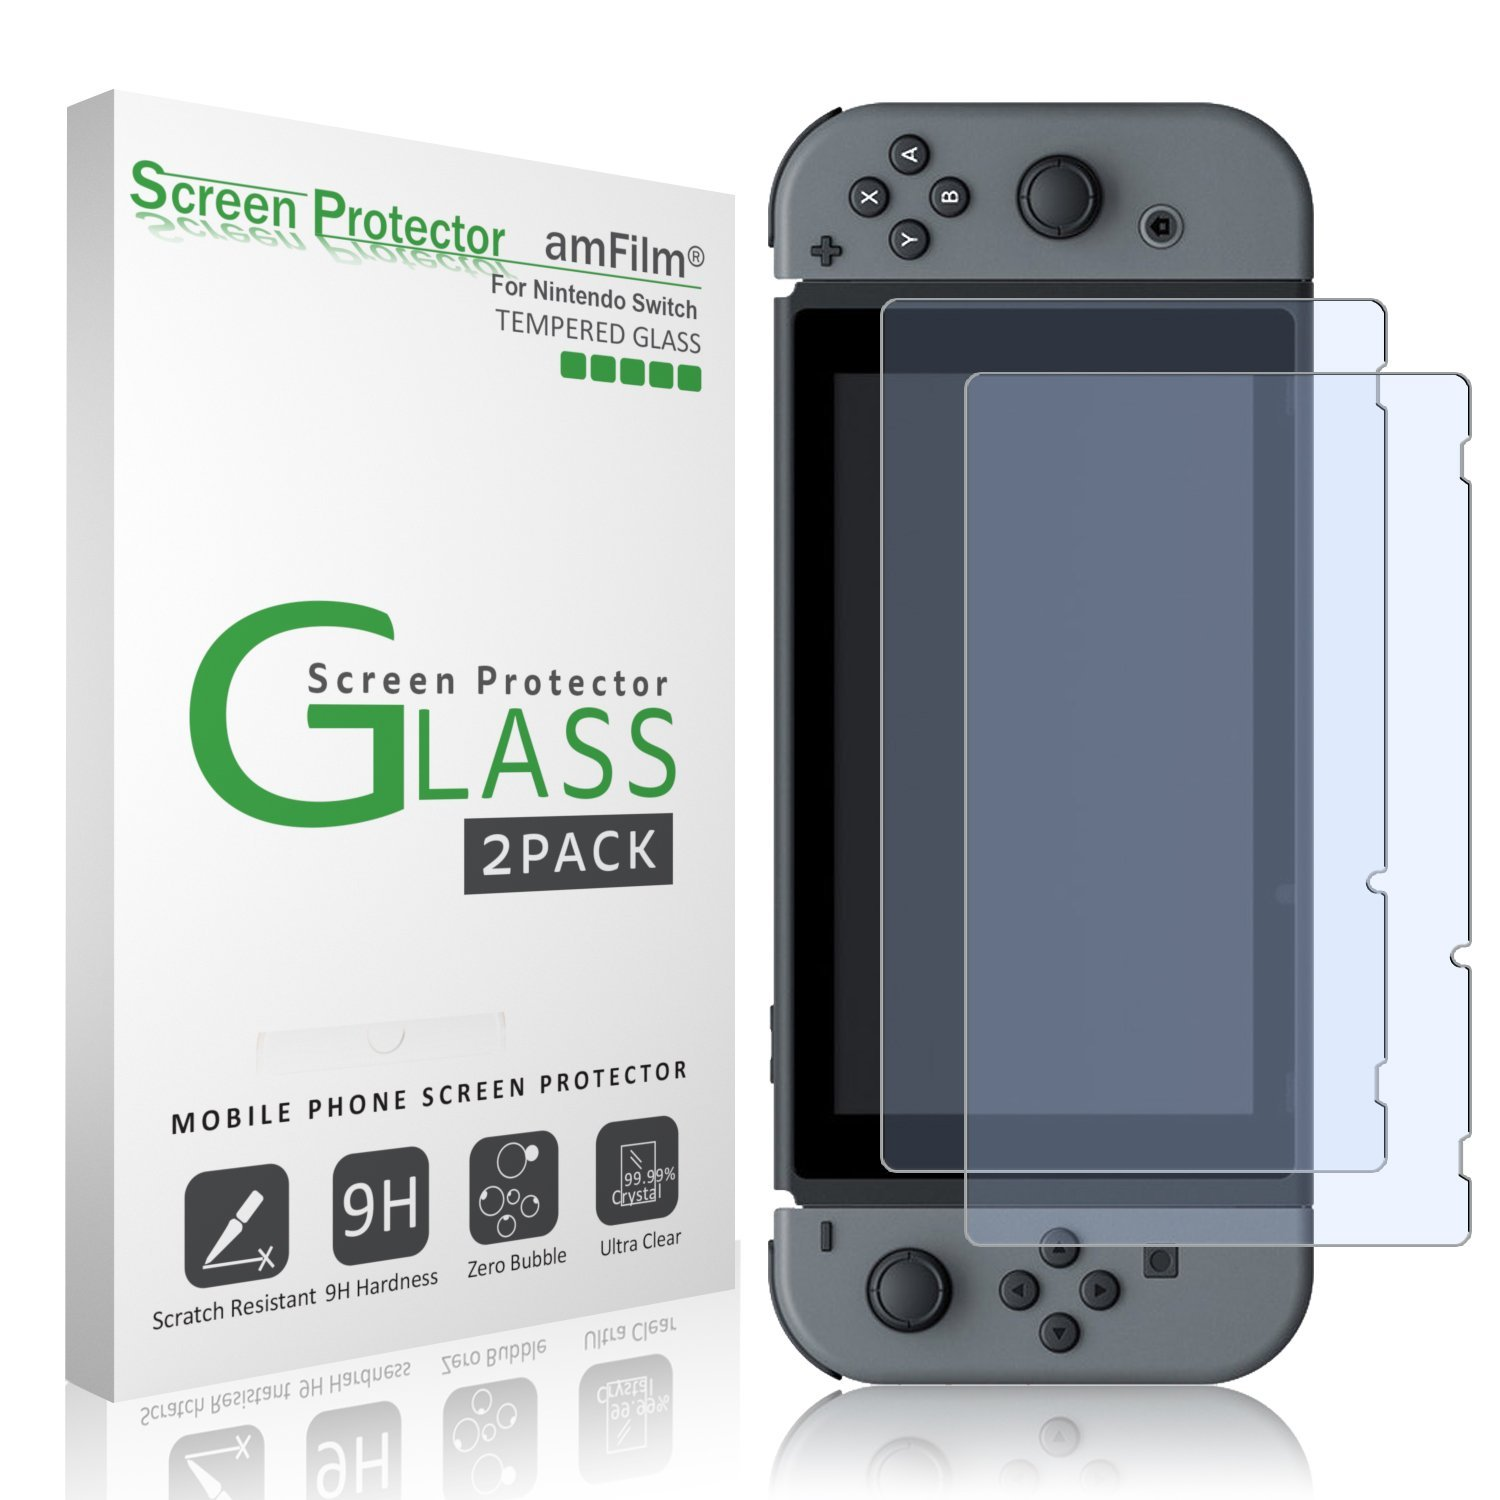 release date 7245e c0a22 Best Screen Protectors for Nintendo Switch in 2019 | iMore